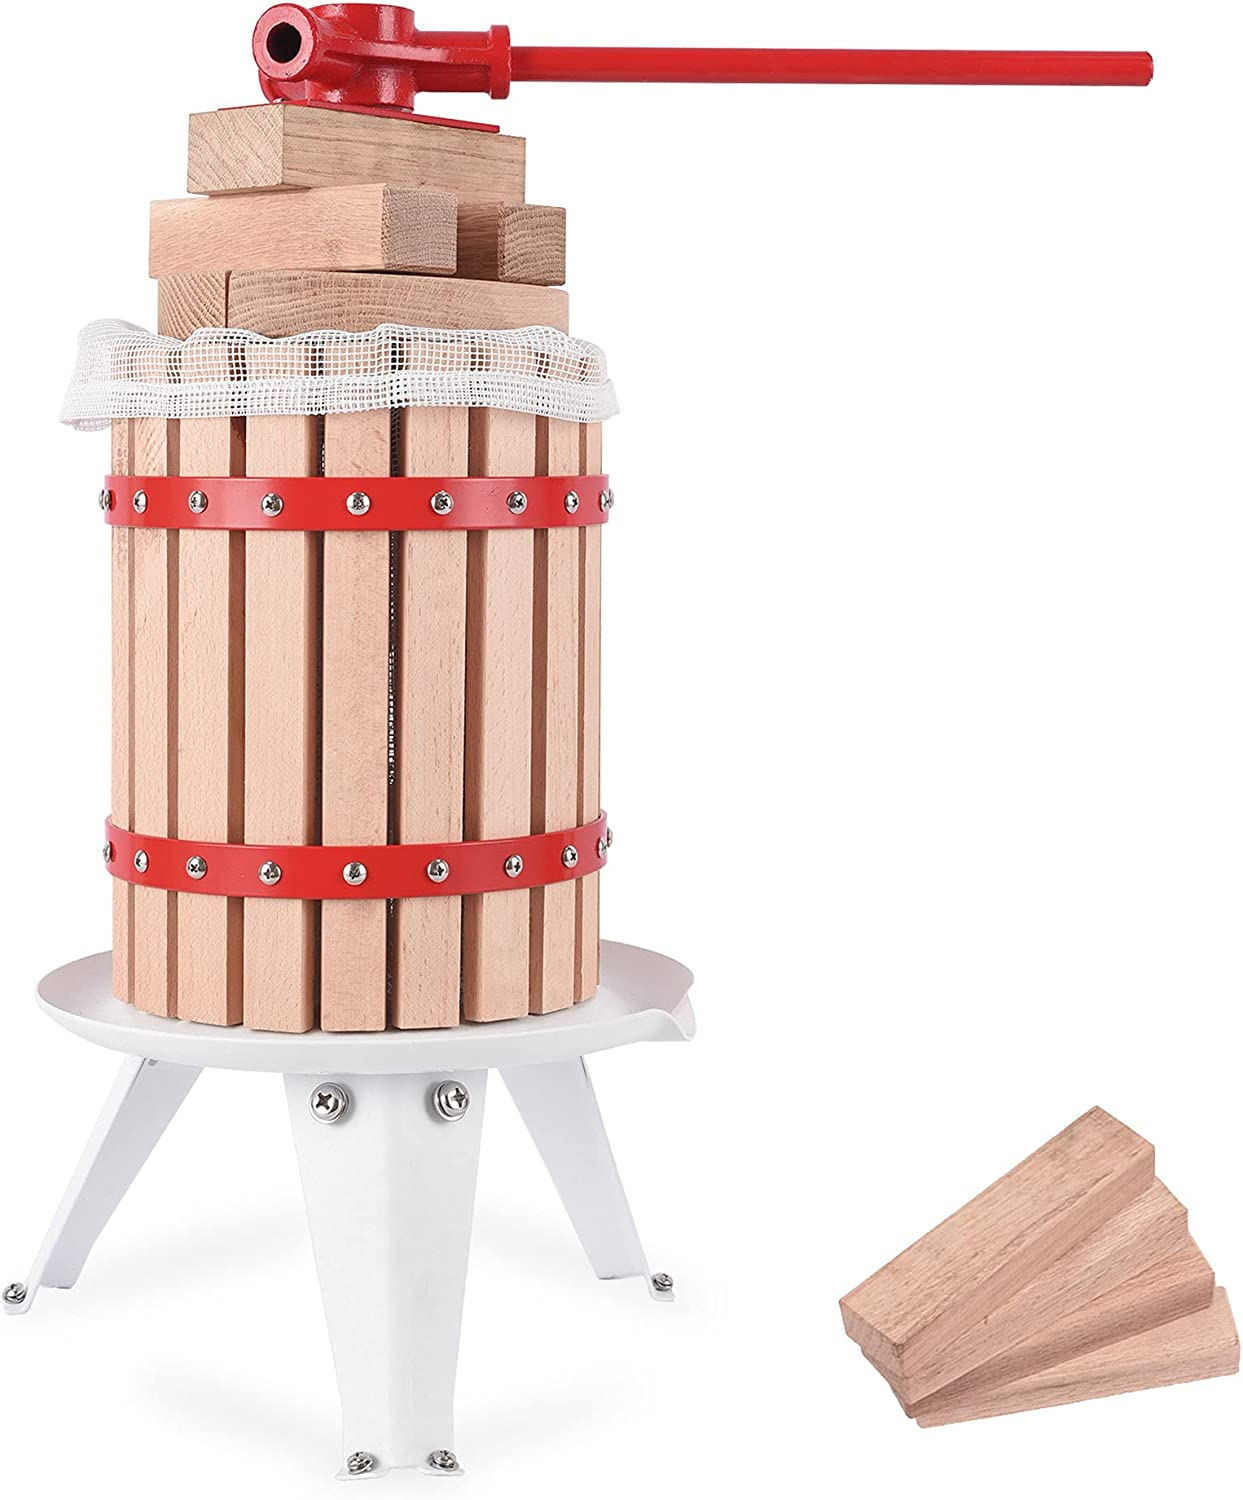 Pondo Upgraded 1.6 Gallon/6 L Manual Fruit Wine Press With 8 Blocks 100% Nature Oak, Cider Apple Grape Berries Crusher Juice Maker for Kitchen, Home and Outdoor